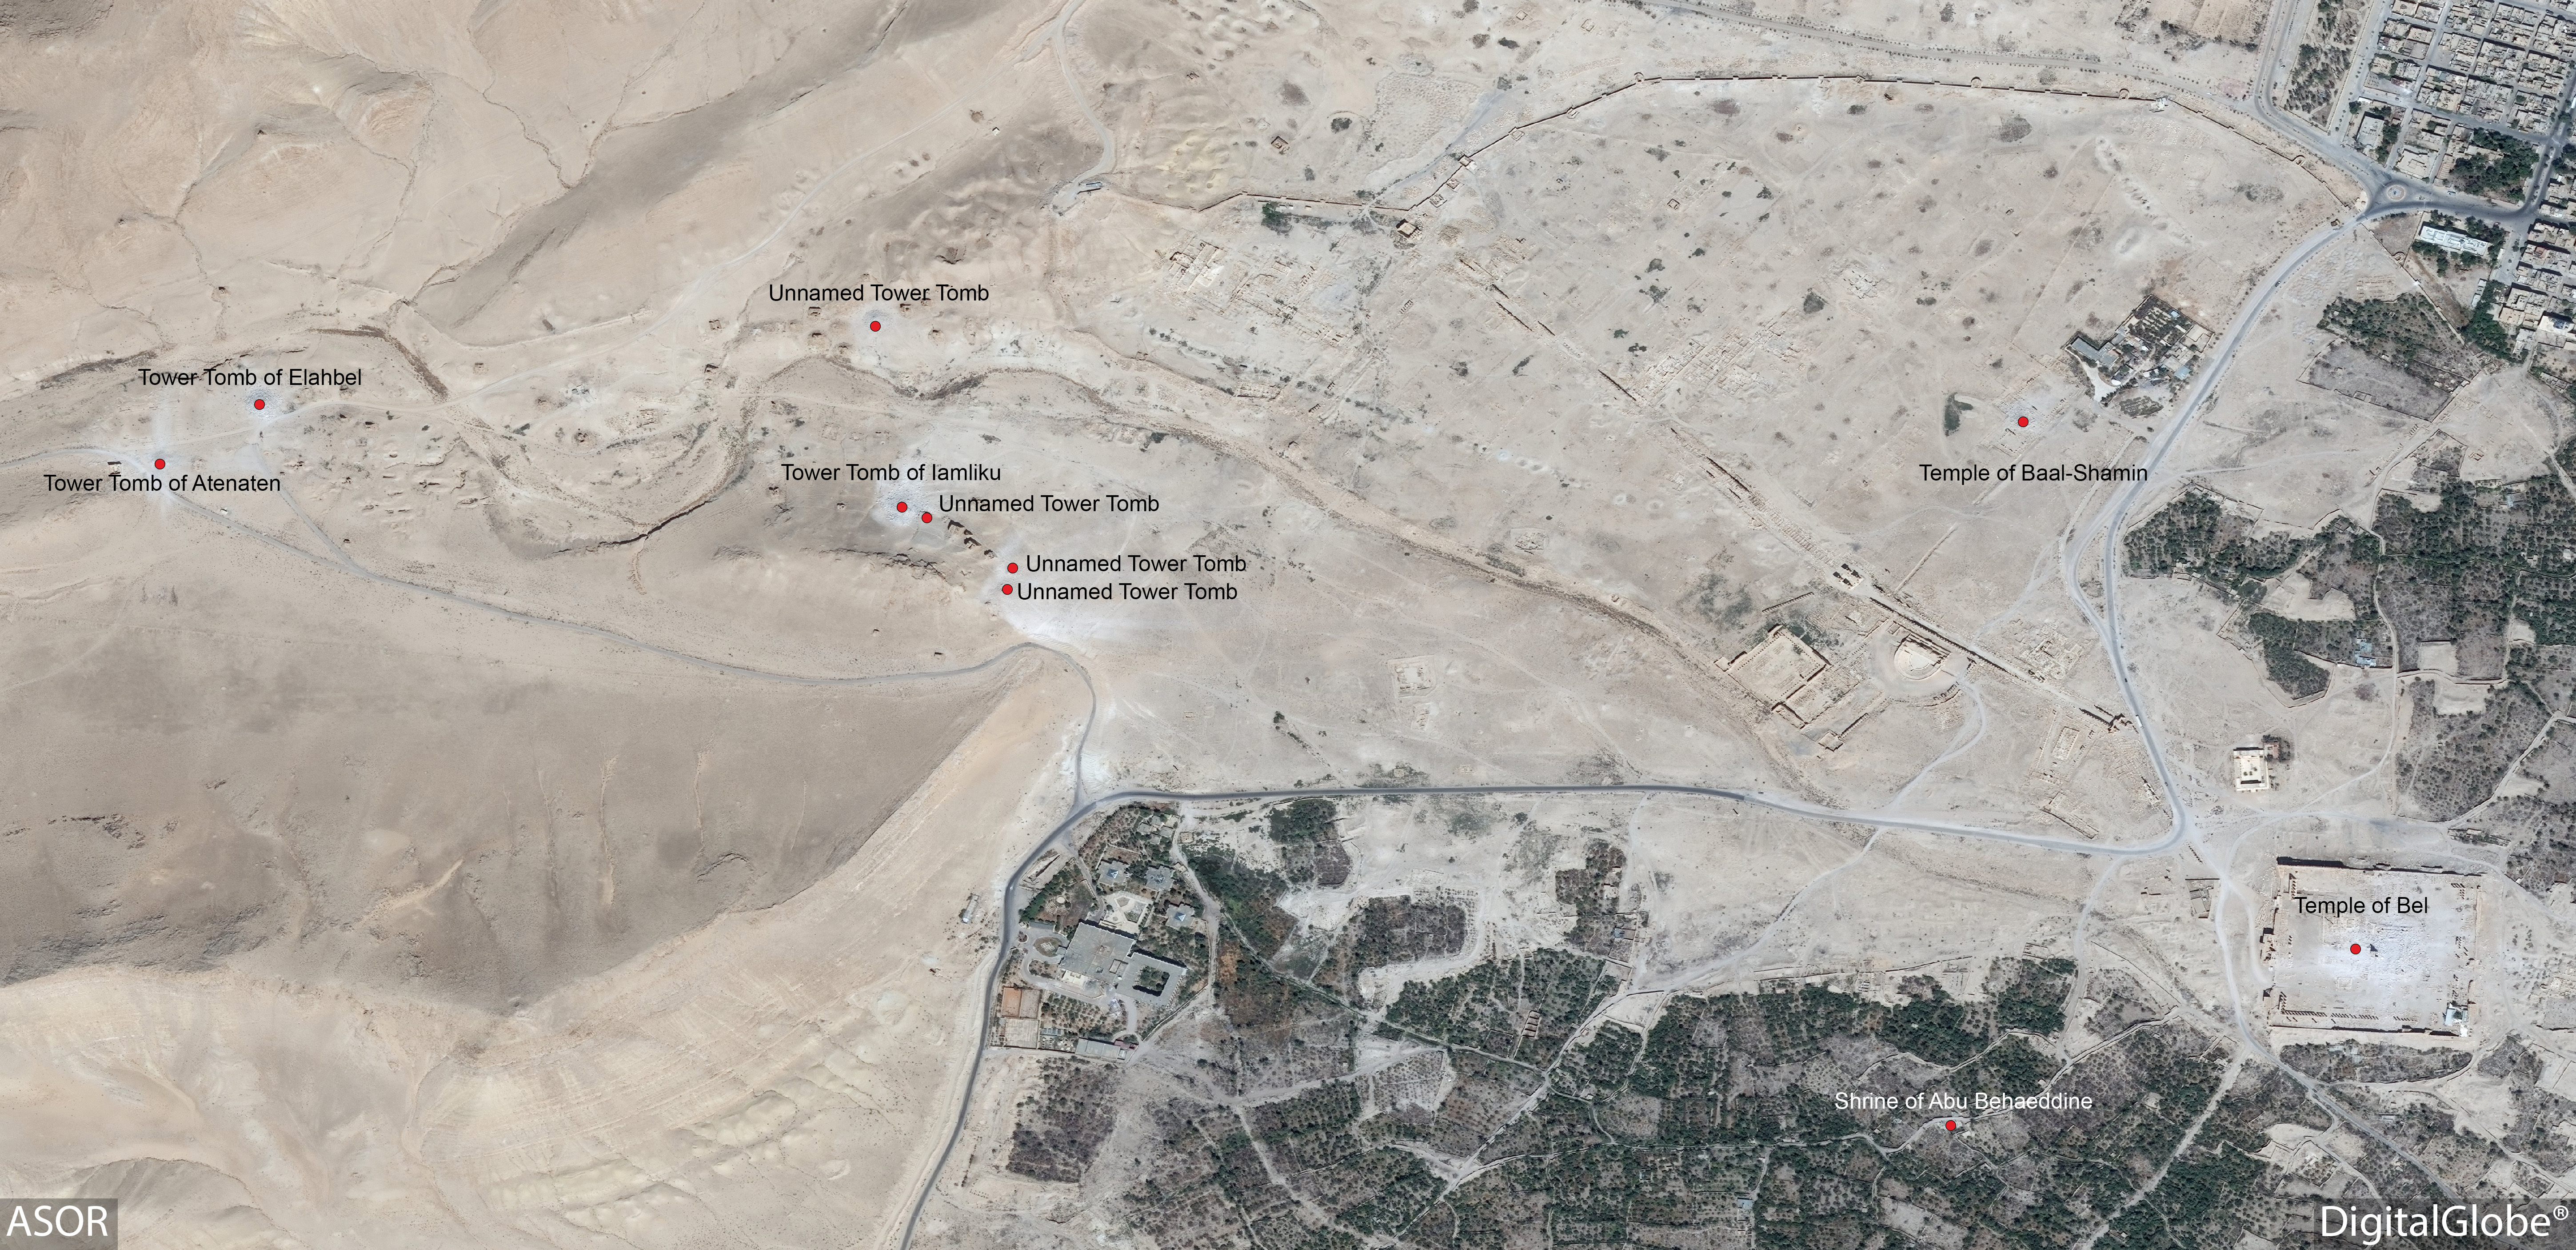 Figure 1: DigitalGlobe satellite imagery depicting multiple destroyed Islamic tombs and ancient architectural features in the Tadmor and Palmyra areas (Digital Globe; September 2, 2015)